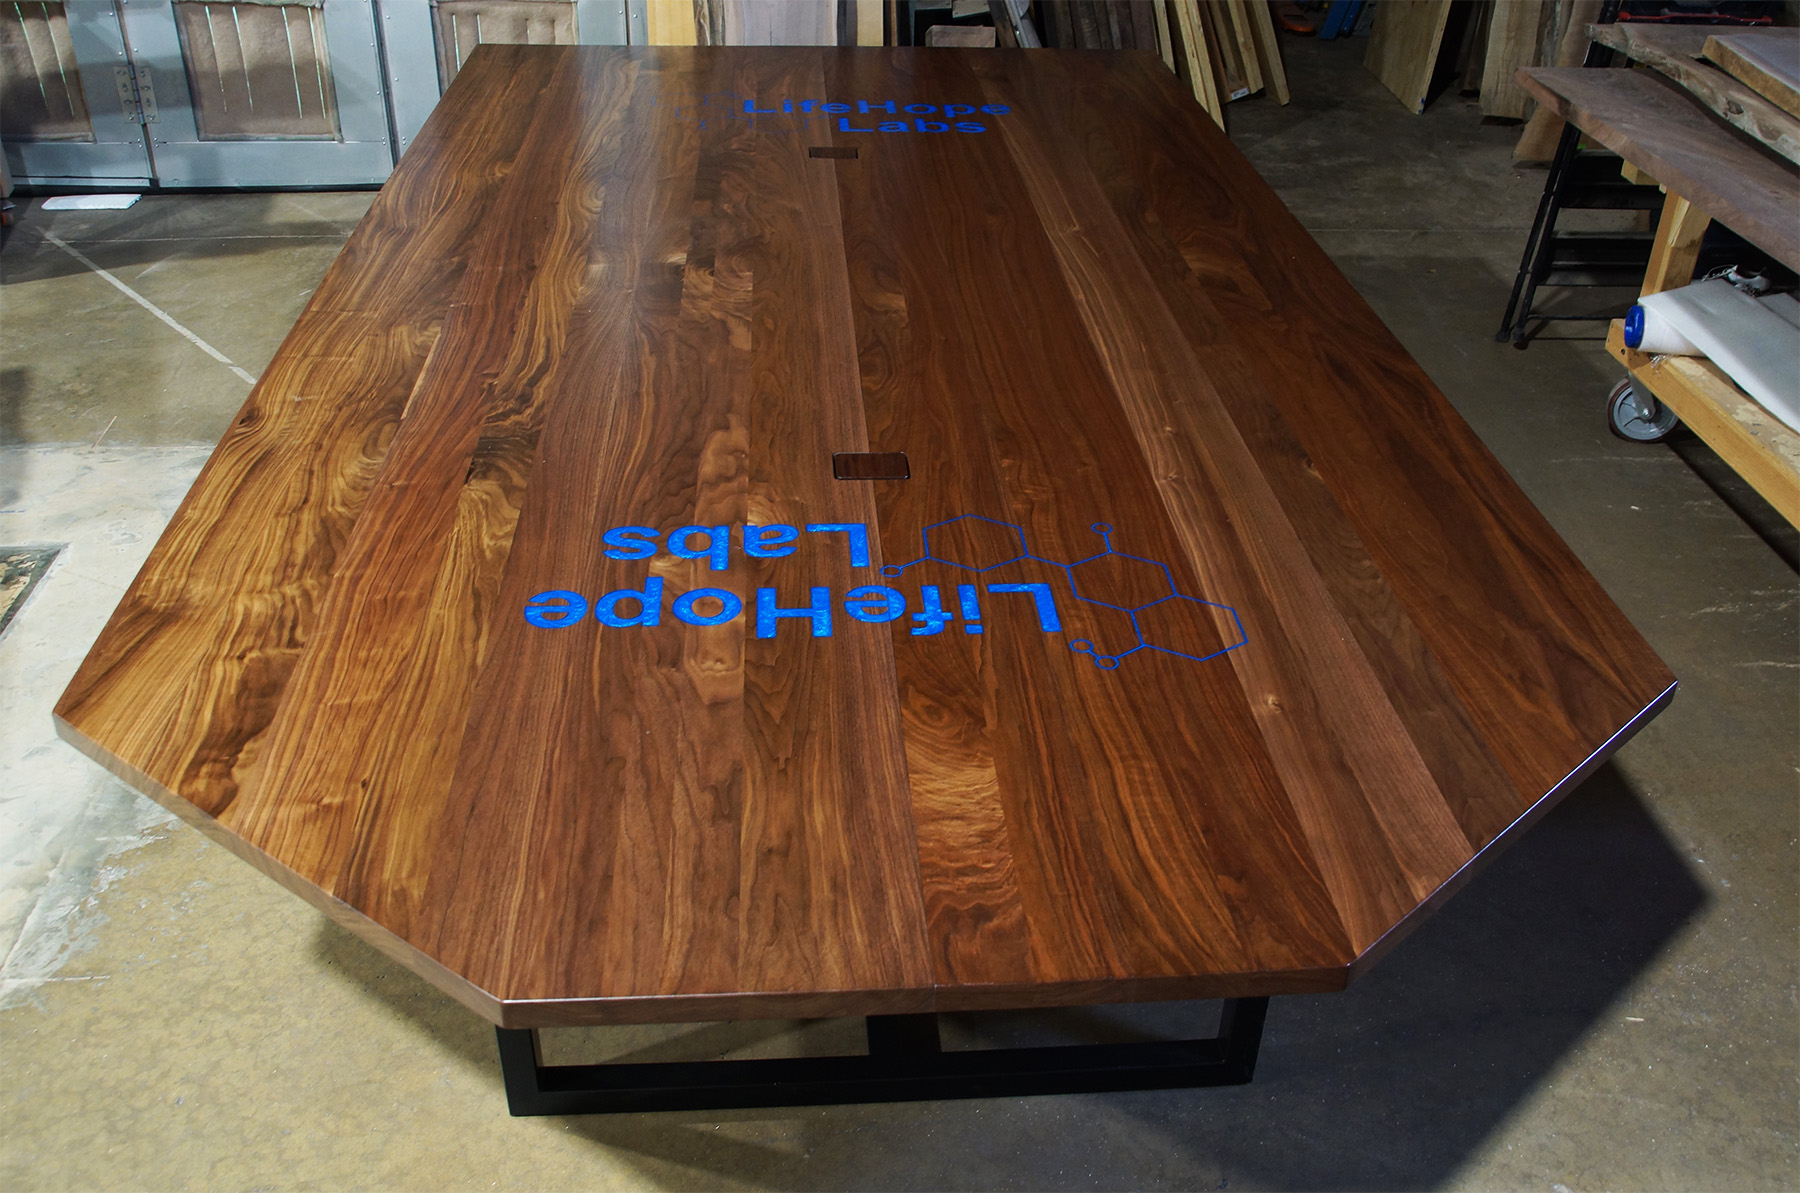 Walnut Plank Conference Table With CNC Logo